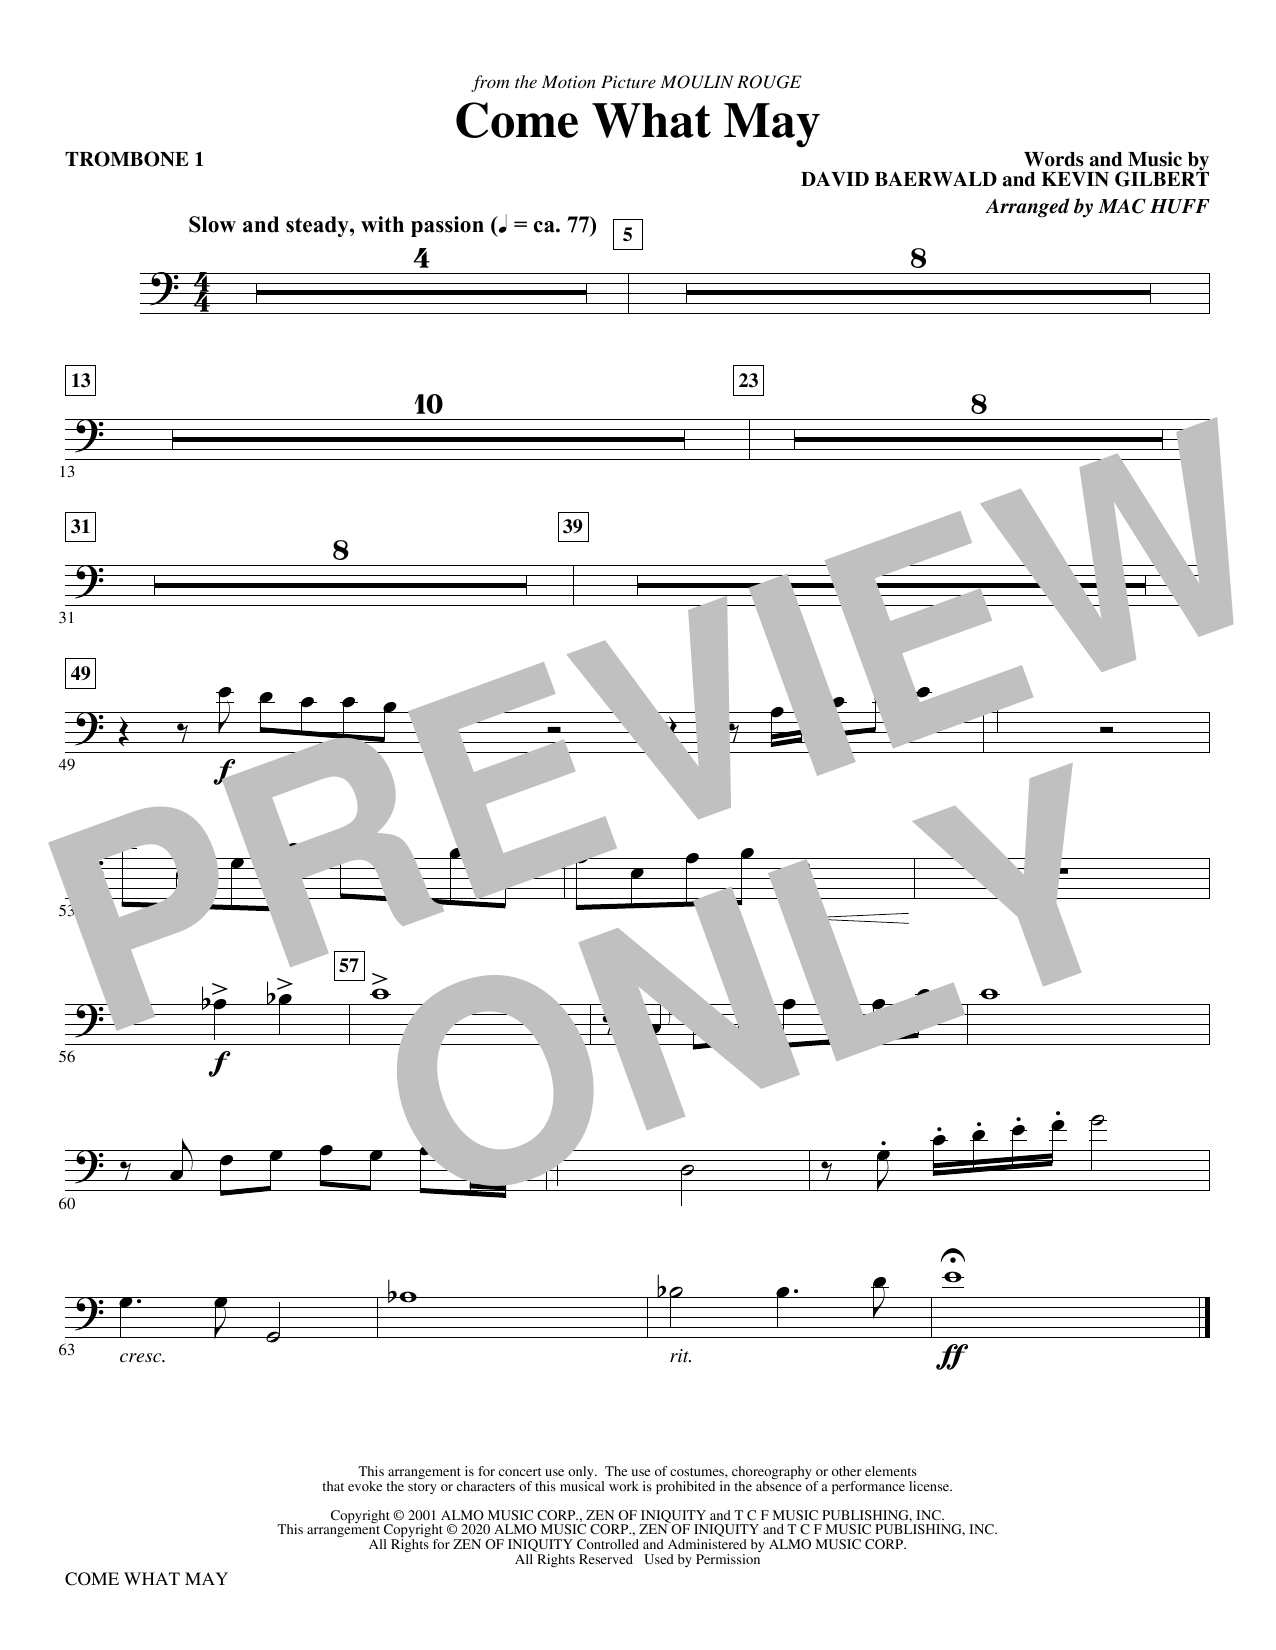 Come What May (from Moulin Rouge) (arr. Mac Huff) - Trombone 1 Sheet Music